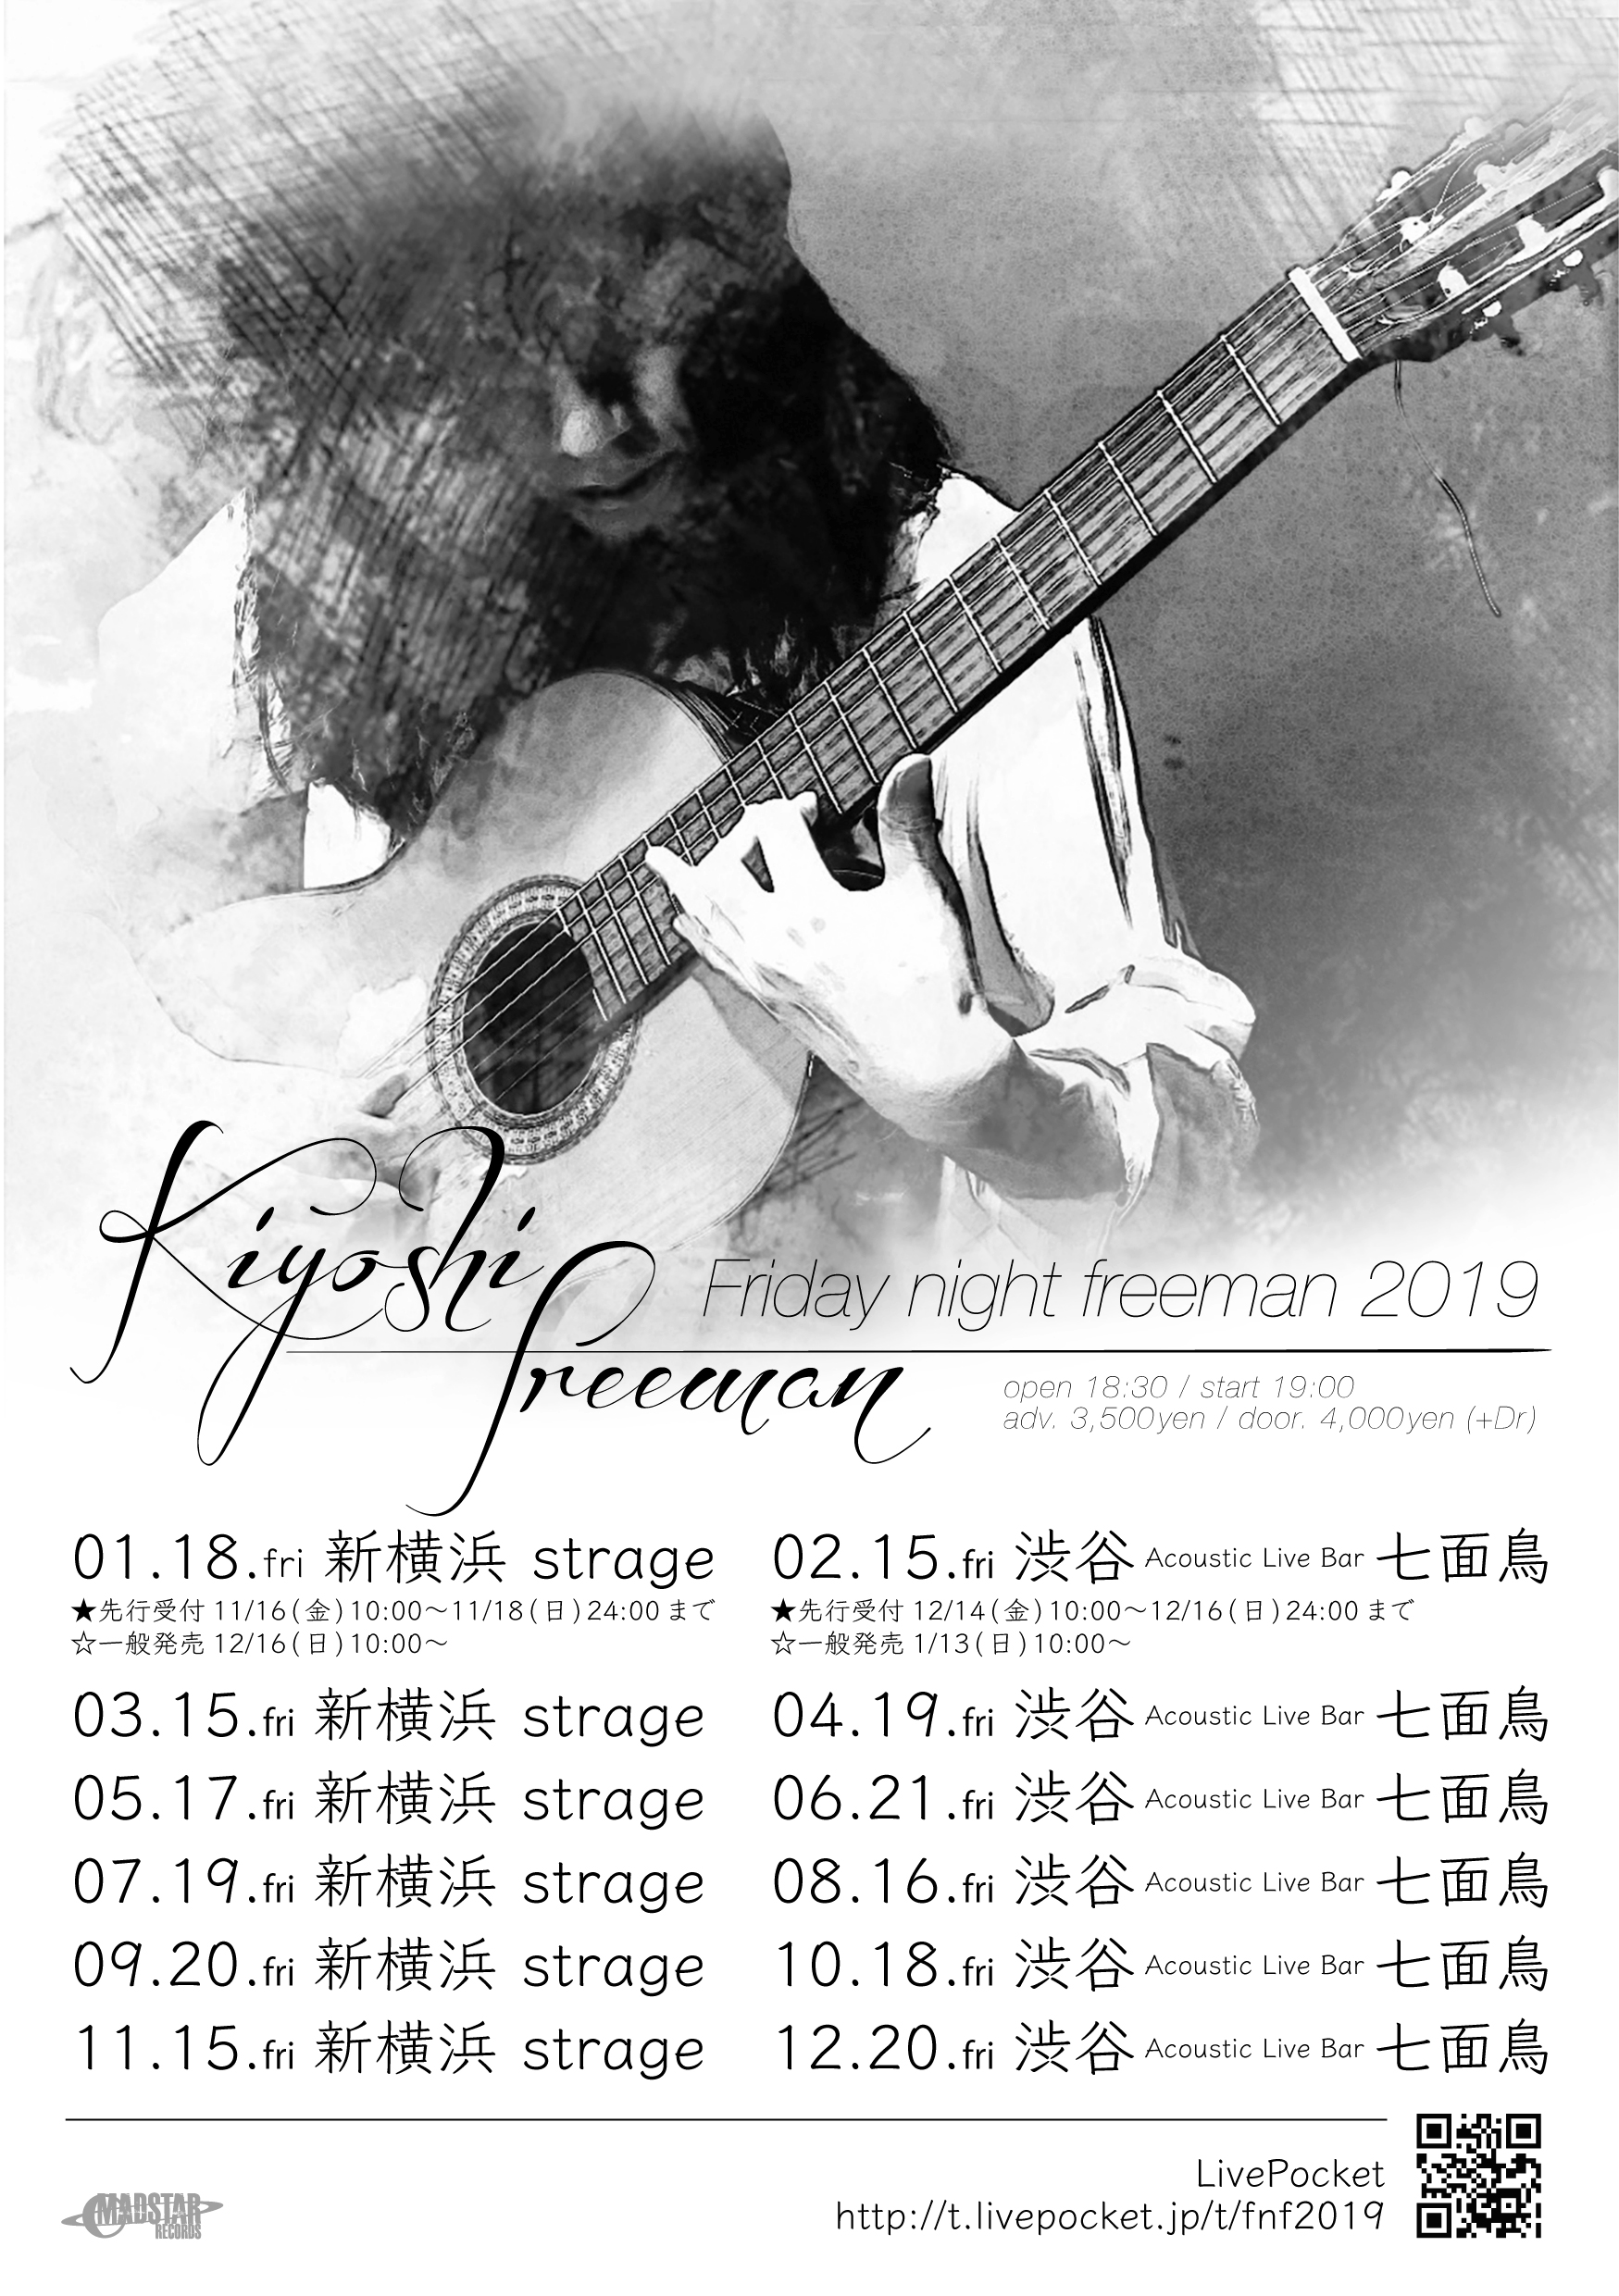 Friday night freeman 1/18 新横浜 strage